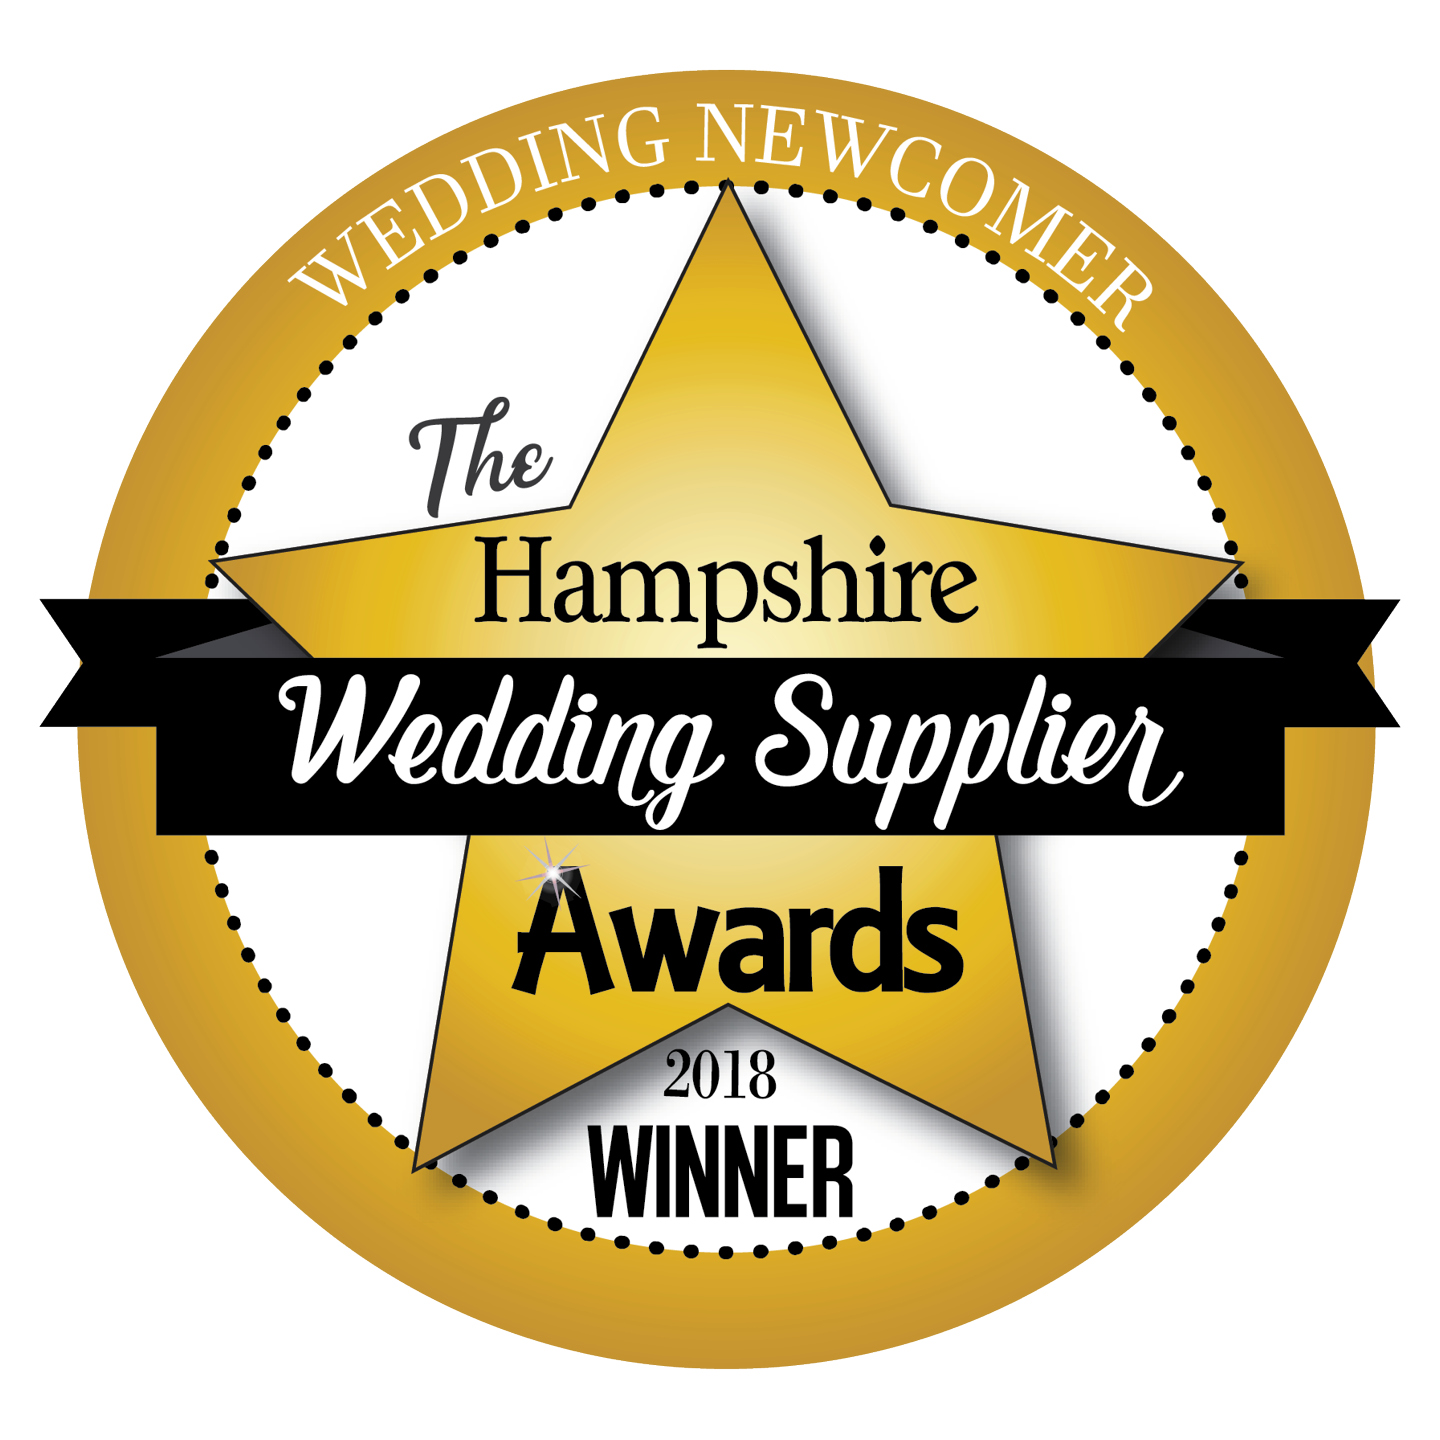 Hampshire Wedding Supplier Awards winners logo